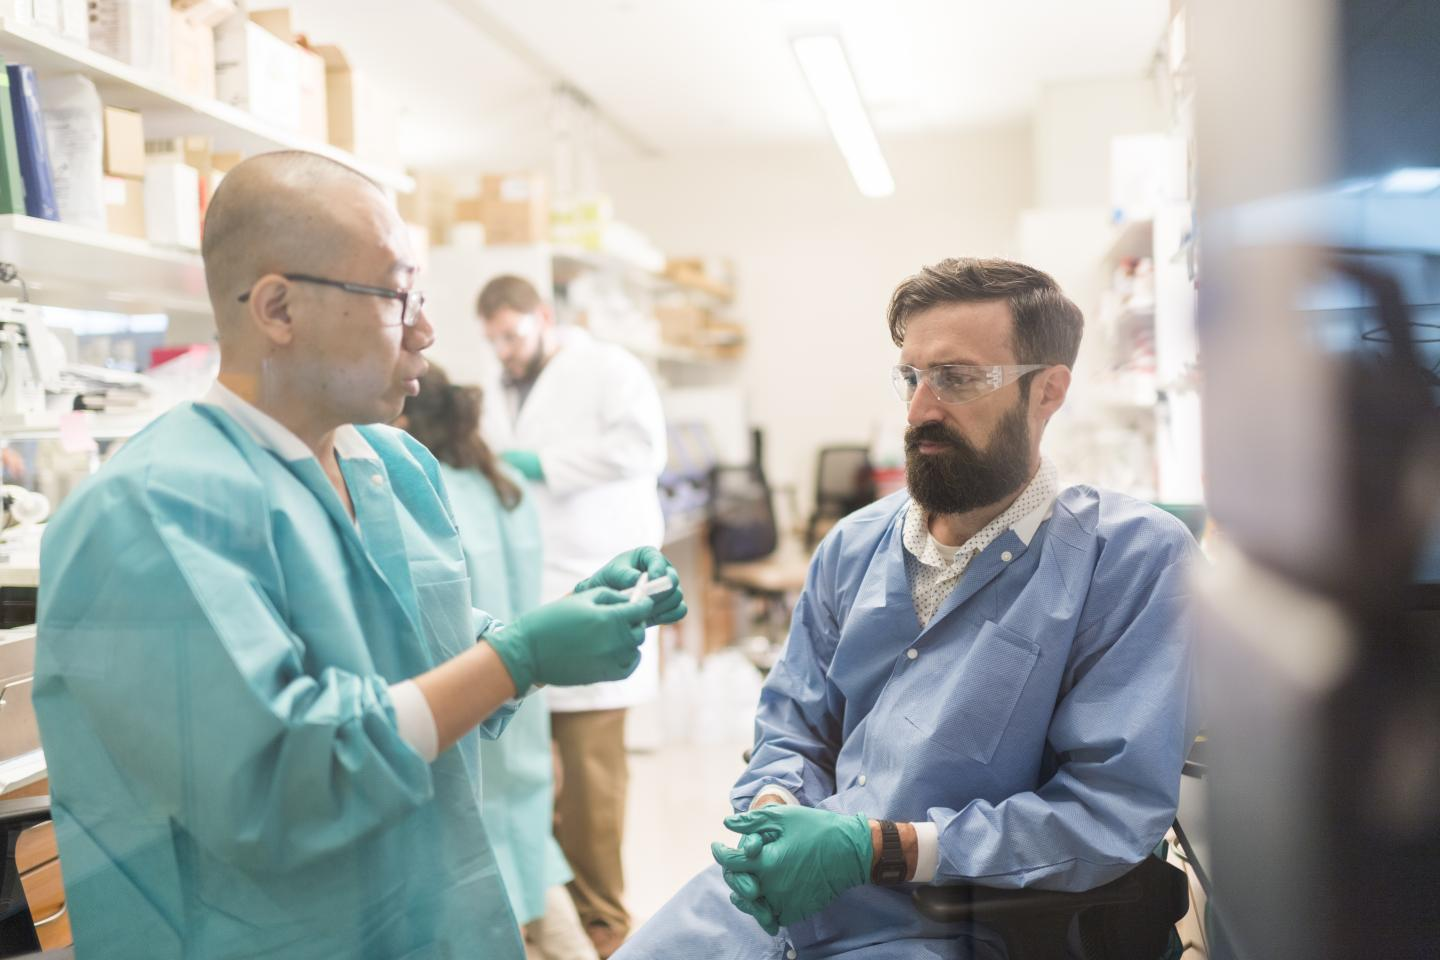 Morgridge Institute Regenerative biology researchers Jue Zhang and Matt Brown examine a part for a new bioreactor designed to help grow arterial tissue. [The Morgridge Institute for Research]